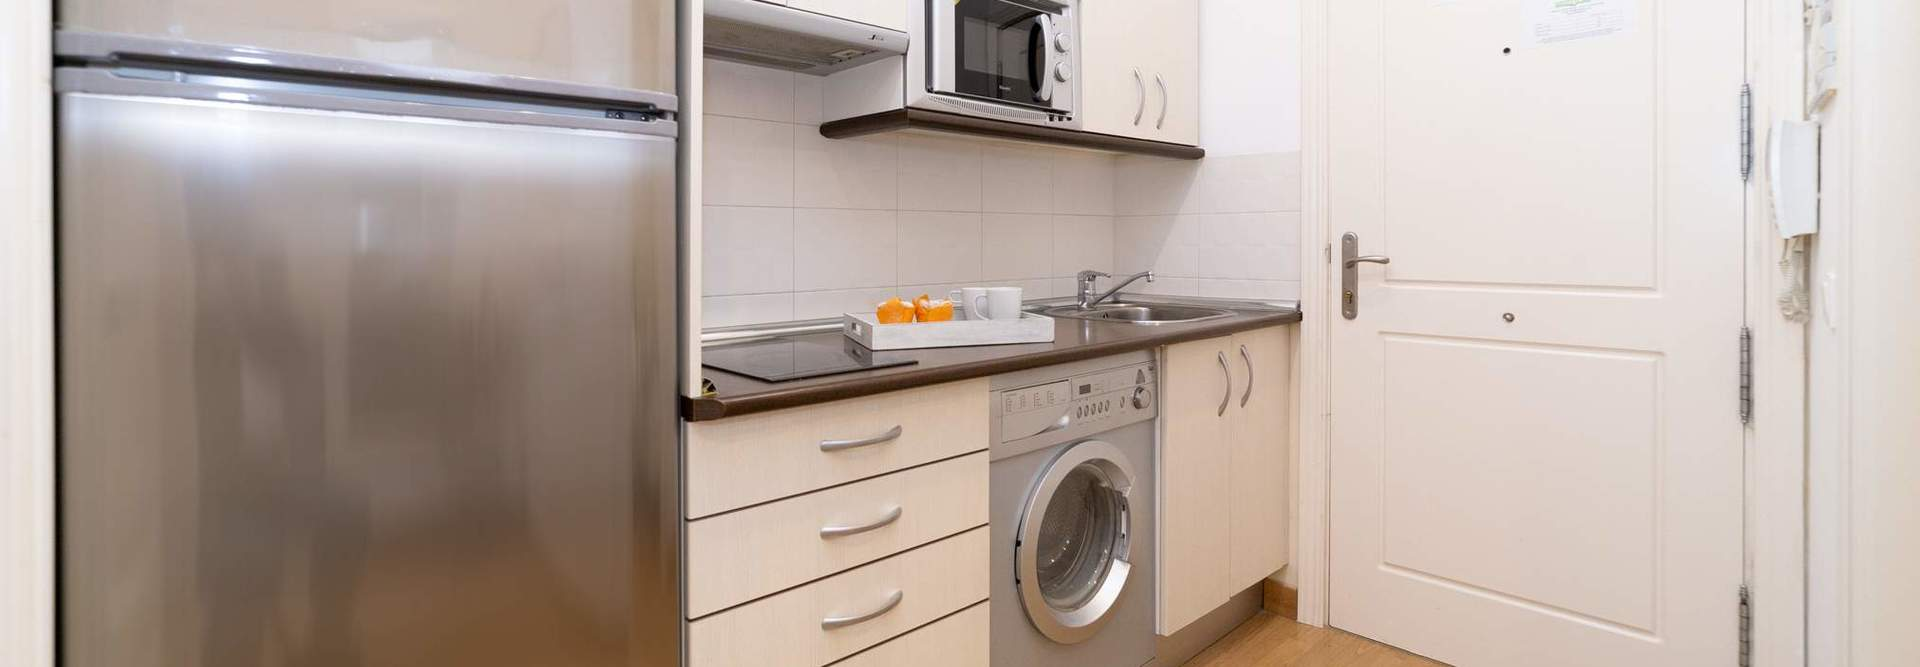 Home alquiler apartamentos madrid mad4rent 18